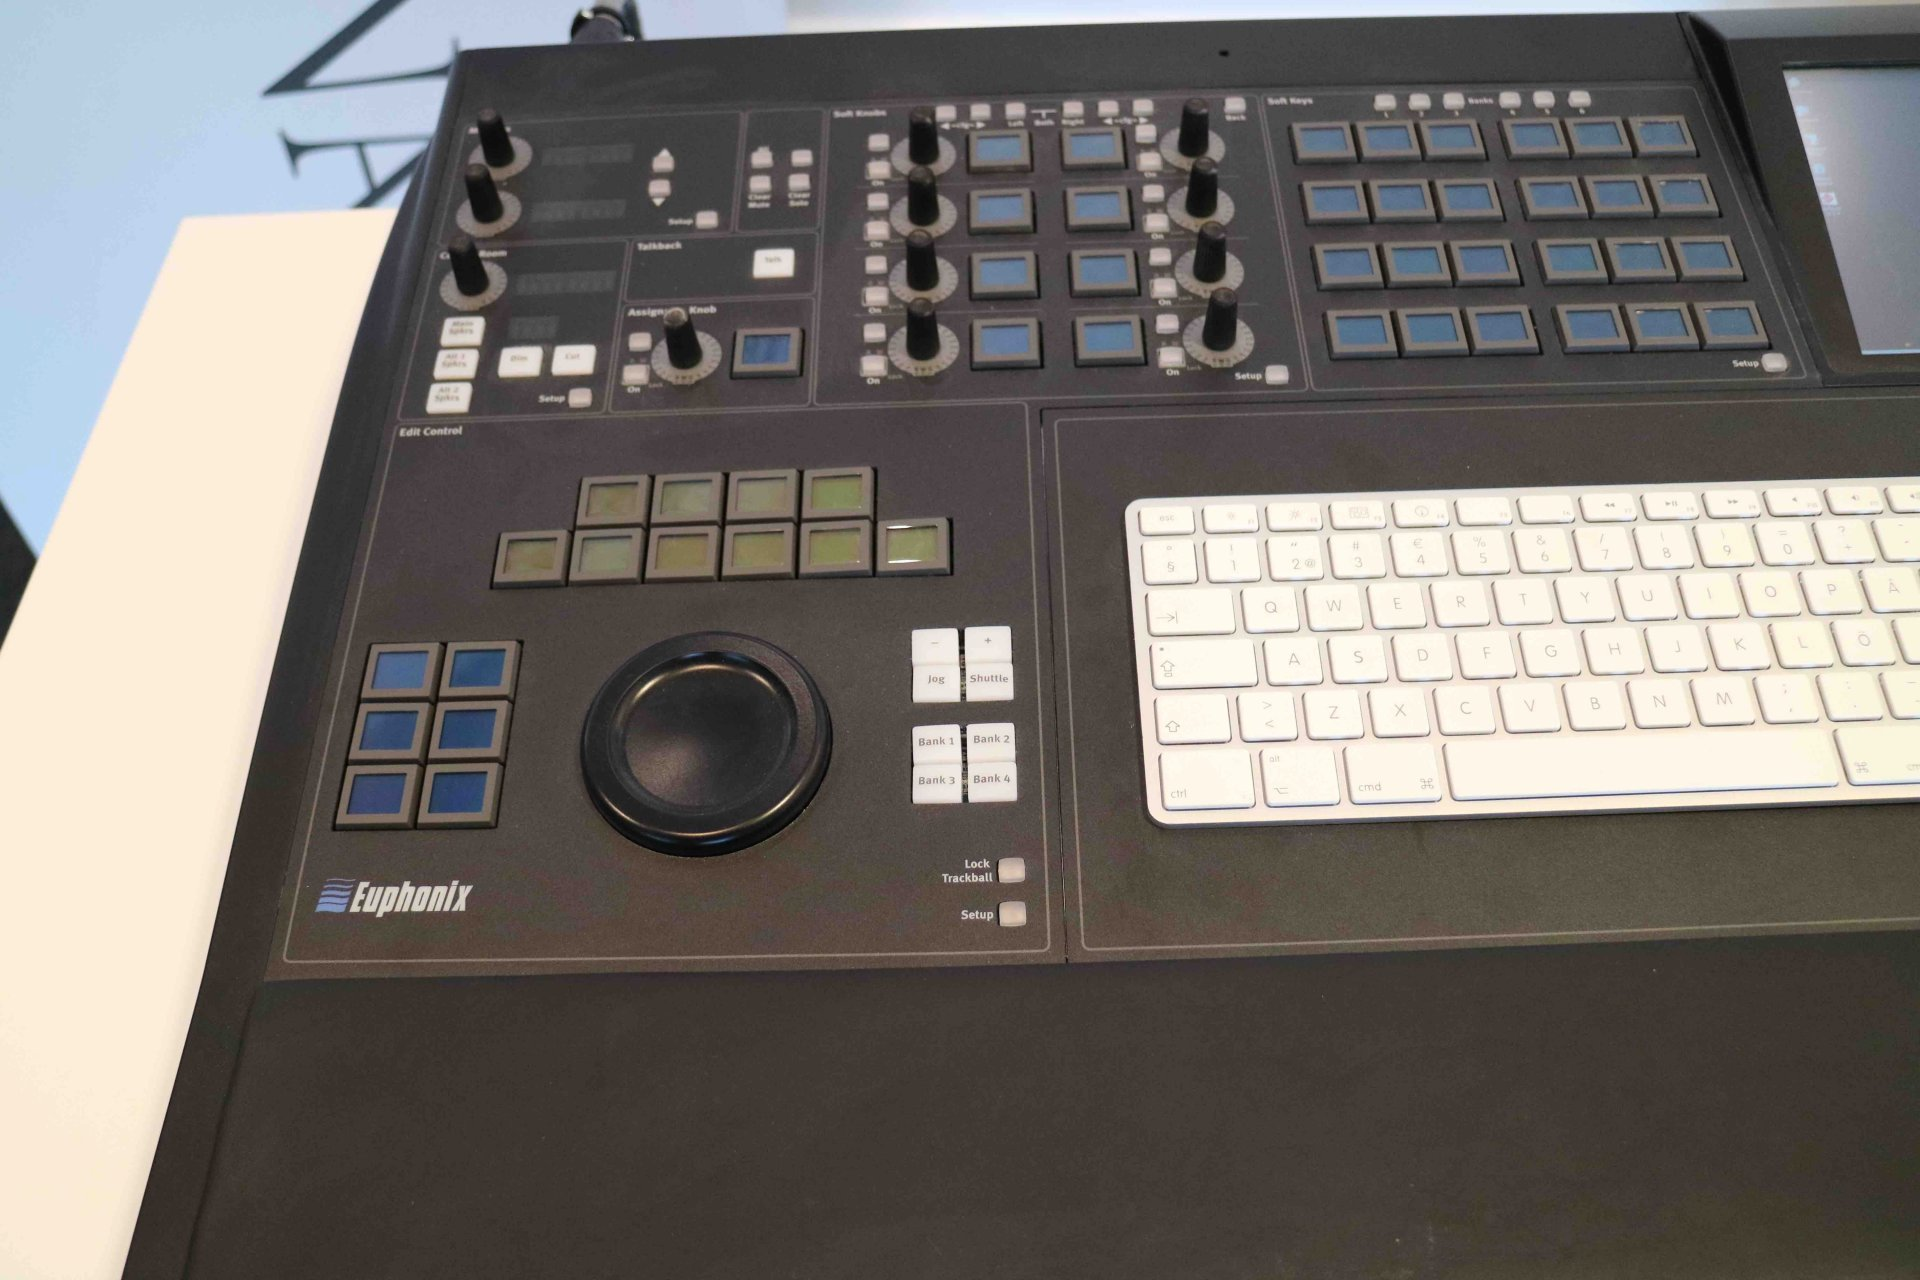 euphonix mc pro daw control surface gearwise used av stage equipment. Black Bedroom Furniture Sets. Home Design Ideas